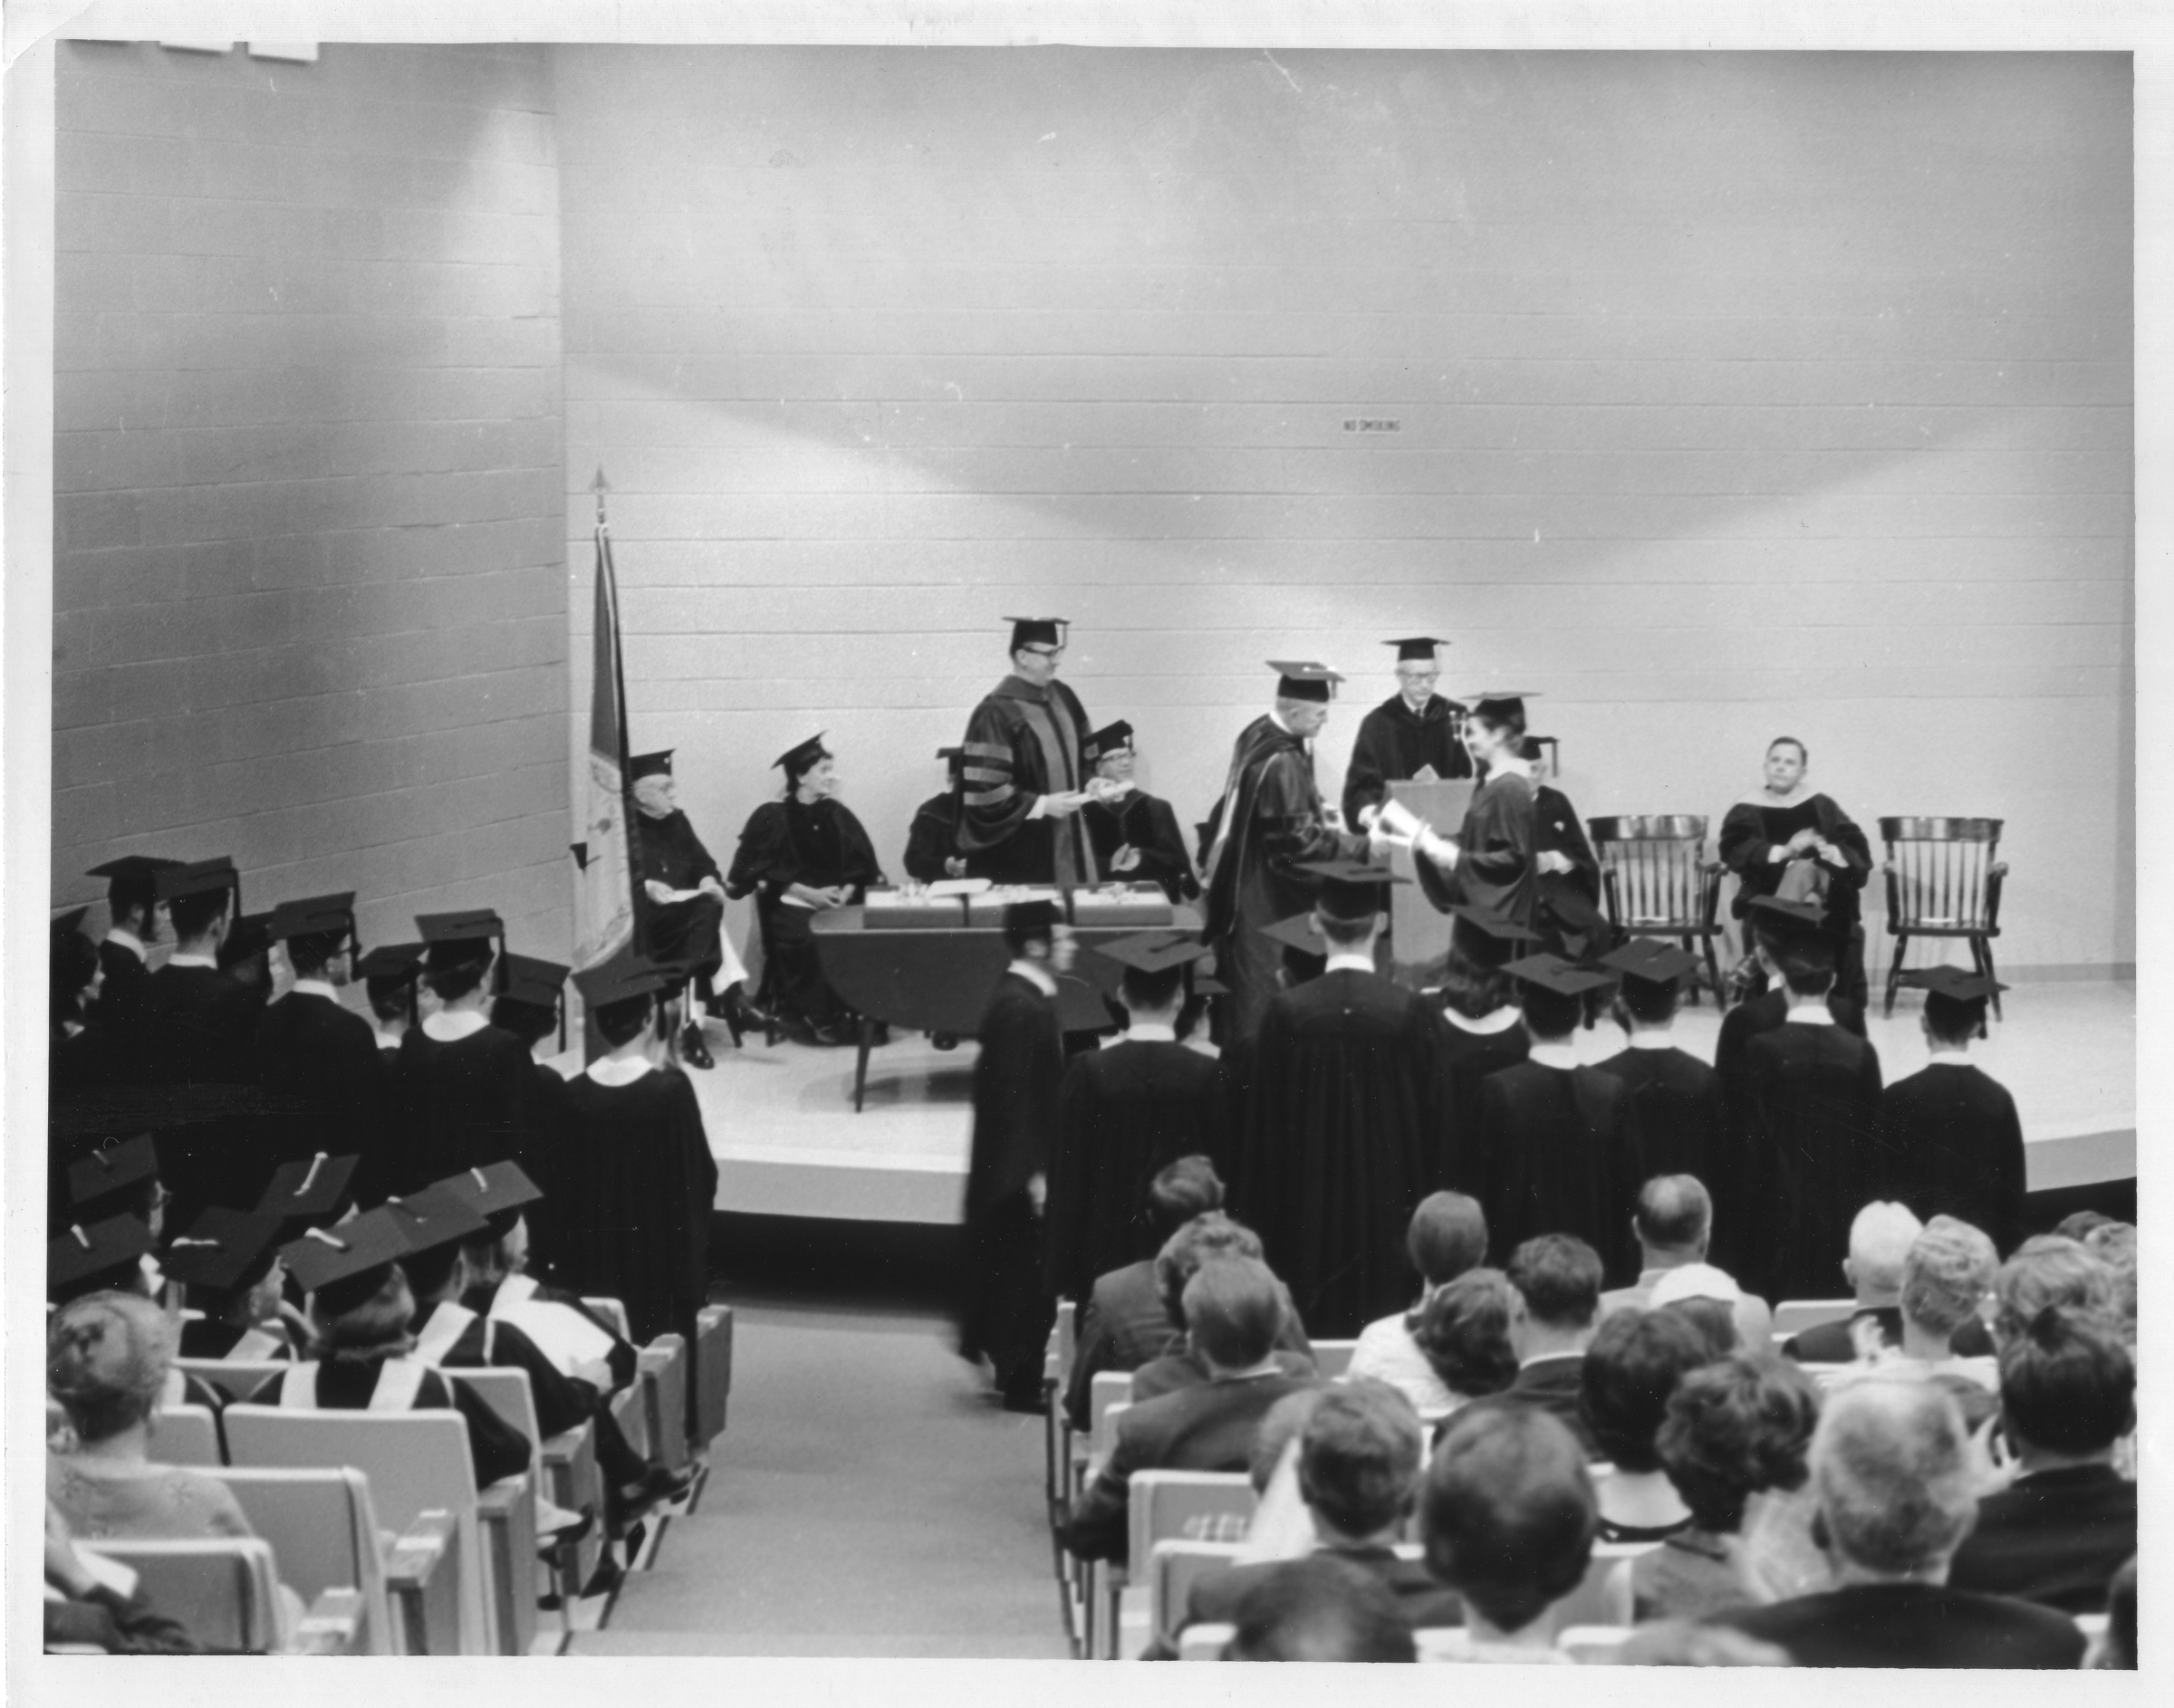 George Mason College Commencement ceremony, Lecture Hall, June 9, 1968